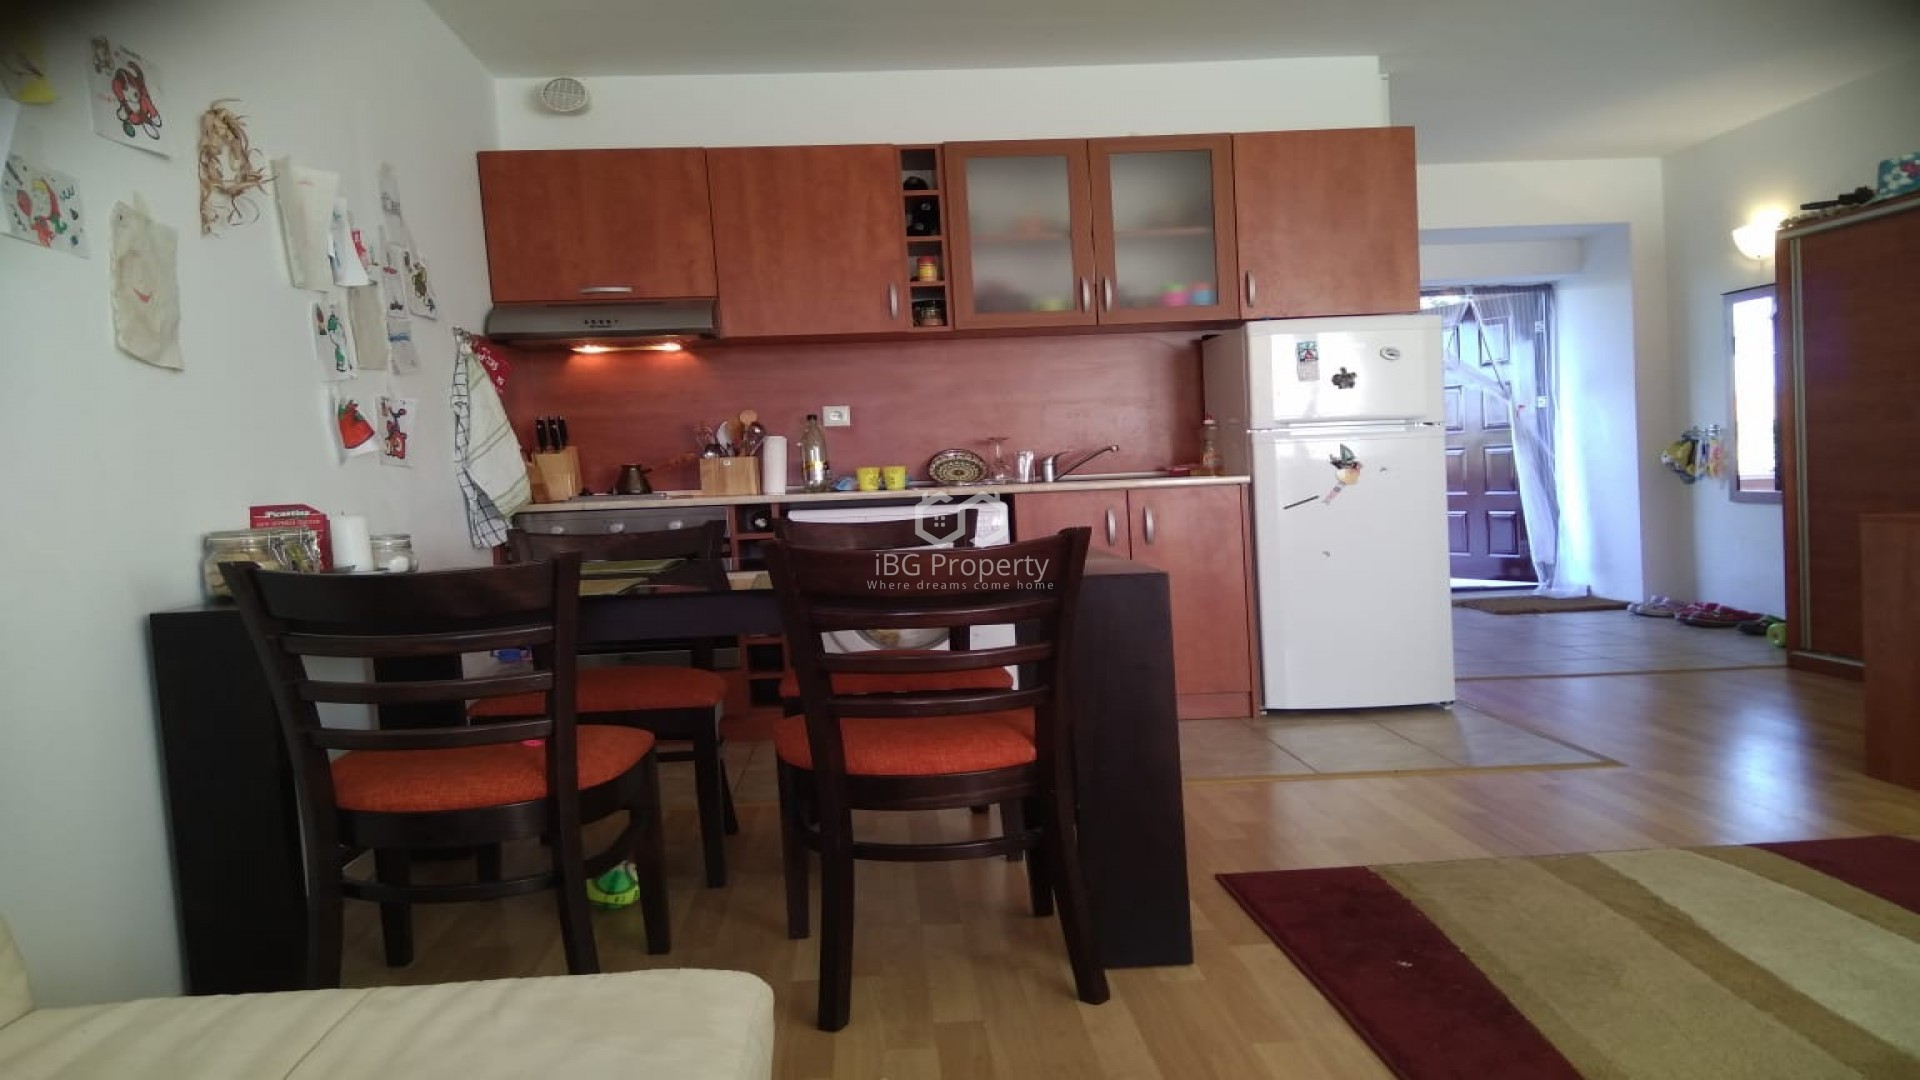 EXCLUSIVE OFFER! One room apartment Byala 52 m2